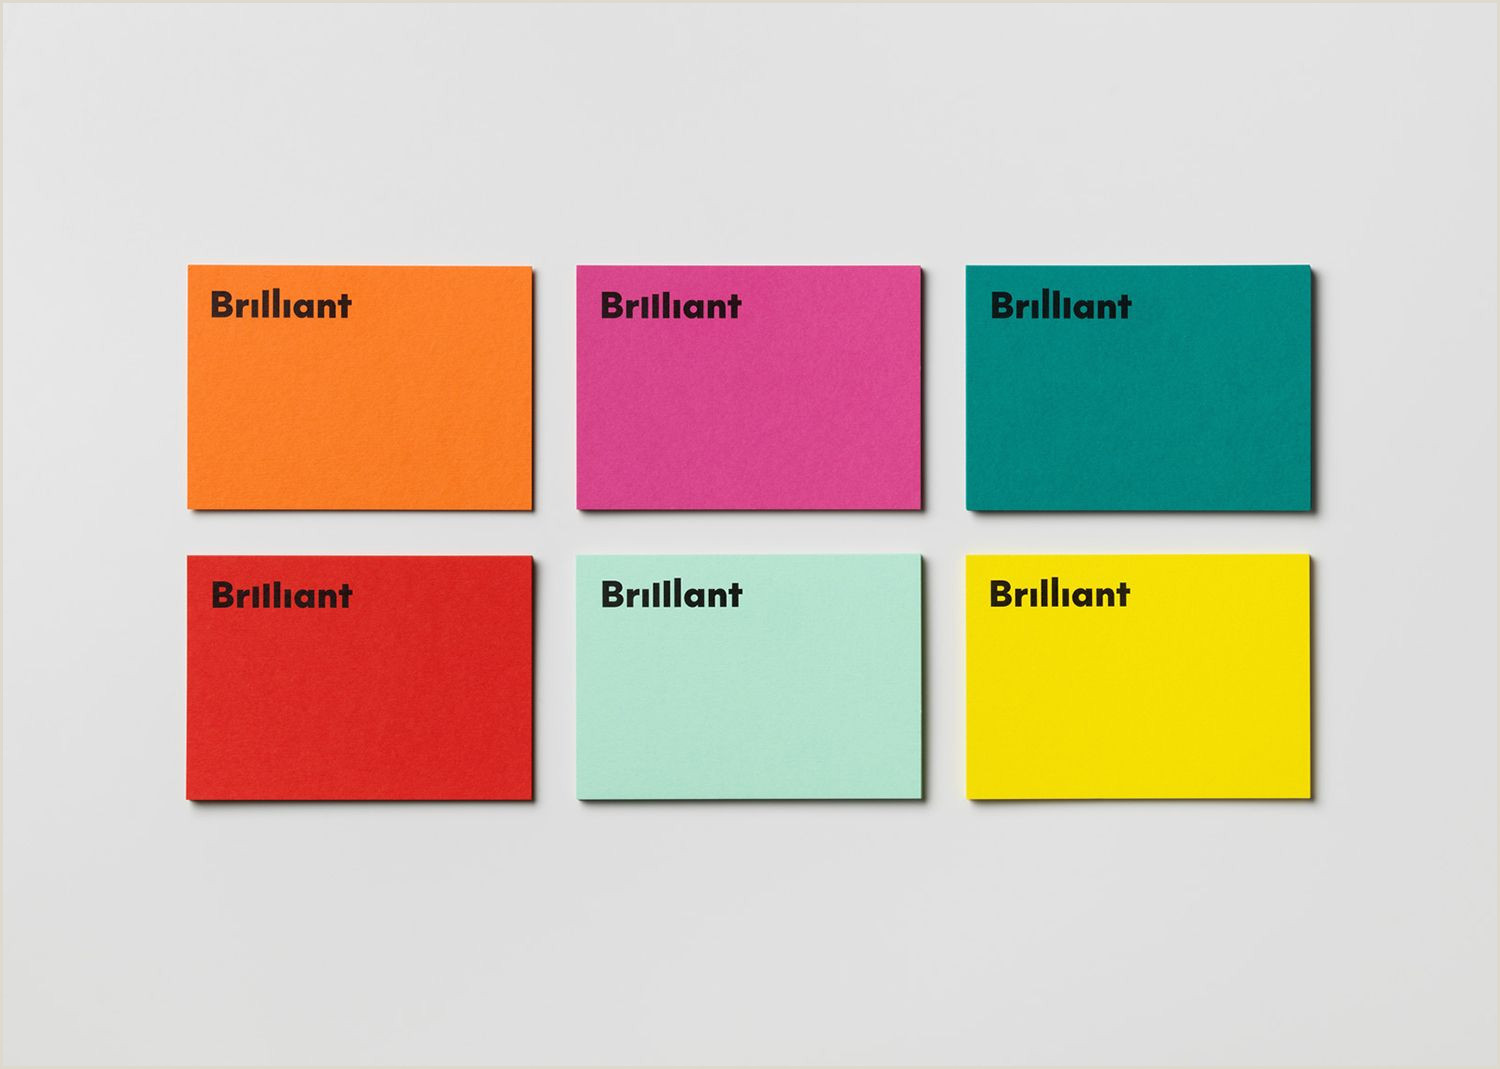 Busines Card Design New Graphic Identity For Brilliant By The Studio — Bp&o